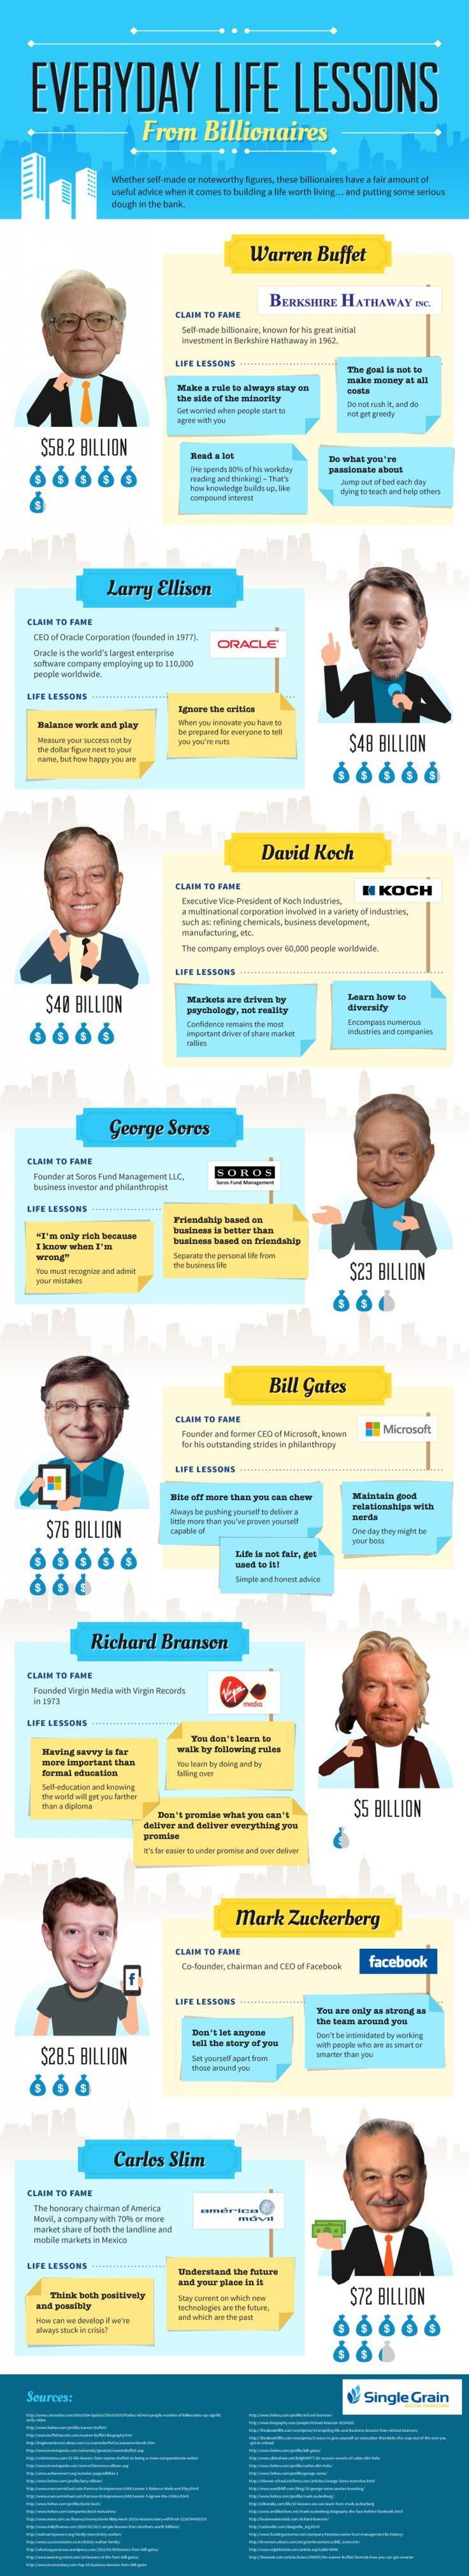 Every Day Life Lessons from Billionaires... If only we knew what they know…